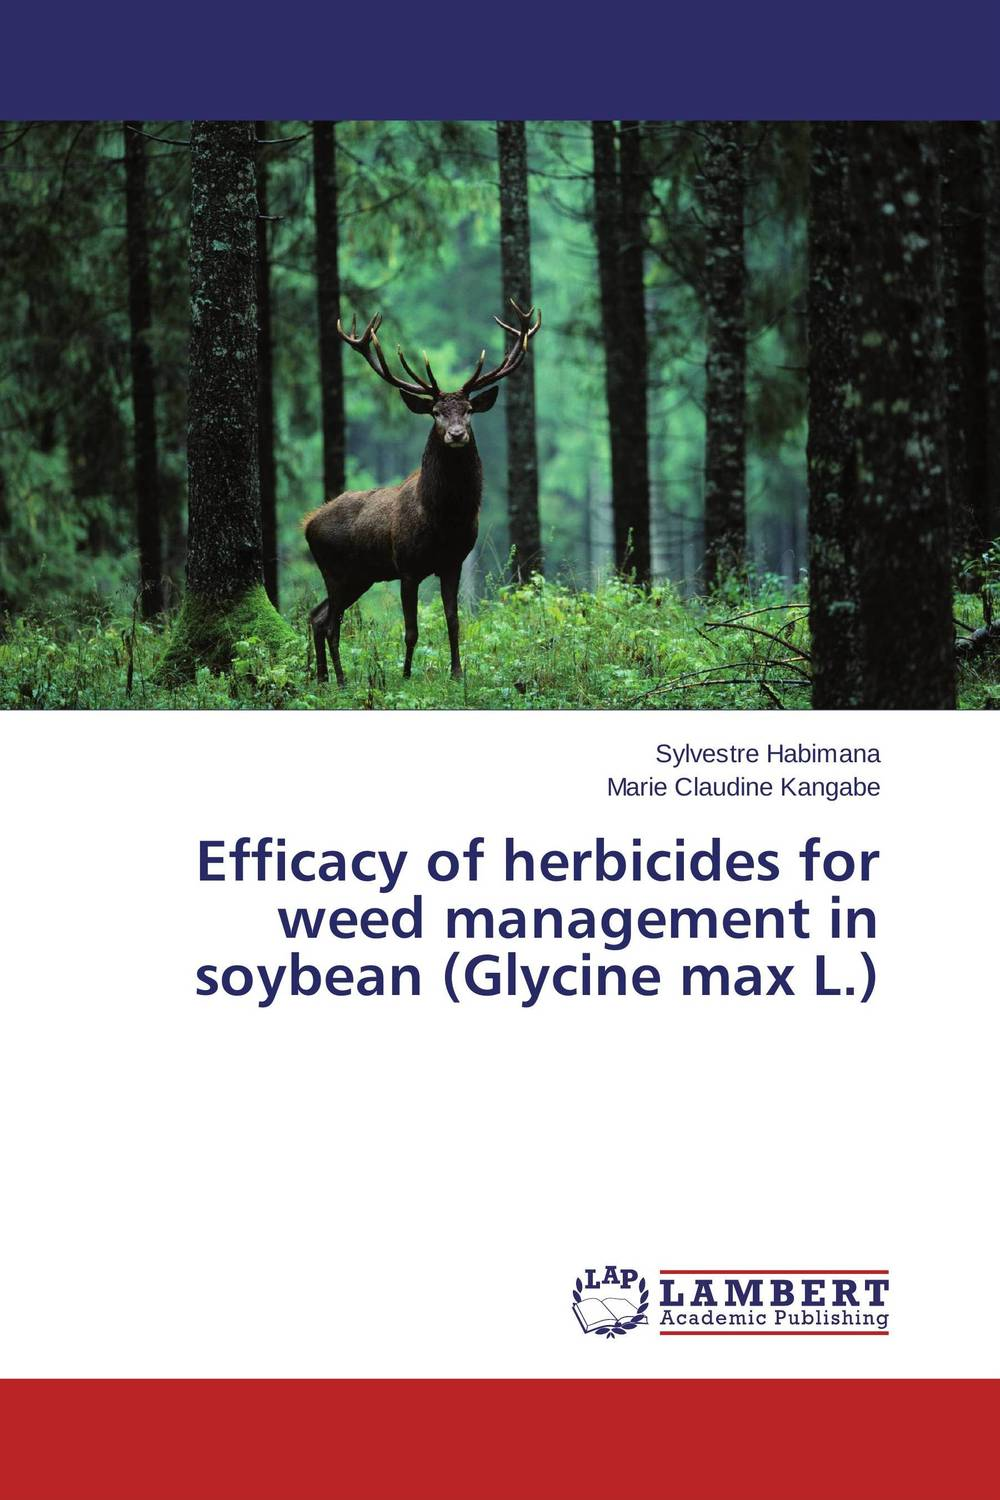 Efficacy of herbicides for weed management in soybean (Glycine max L.) opportunities for and constraints on crop production